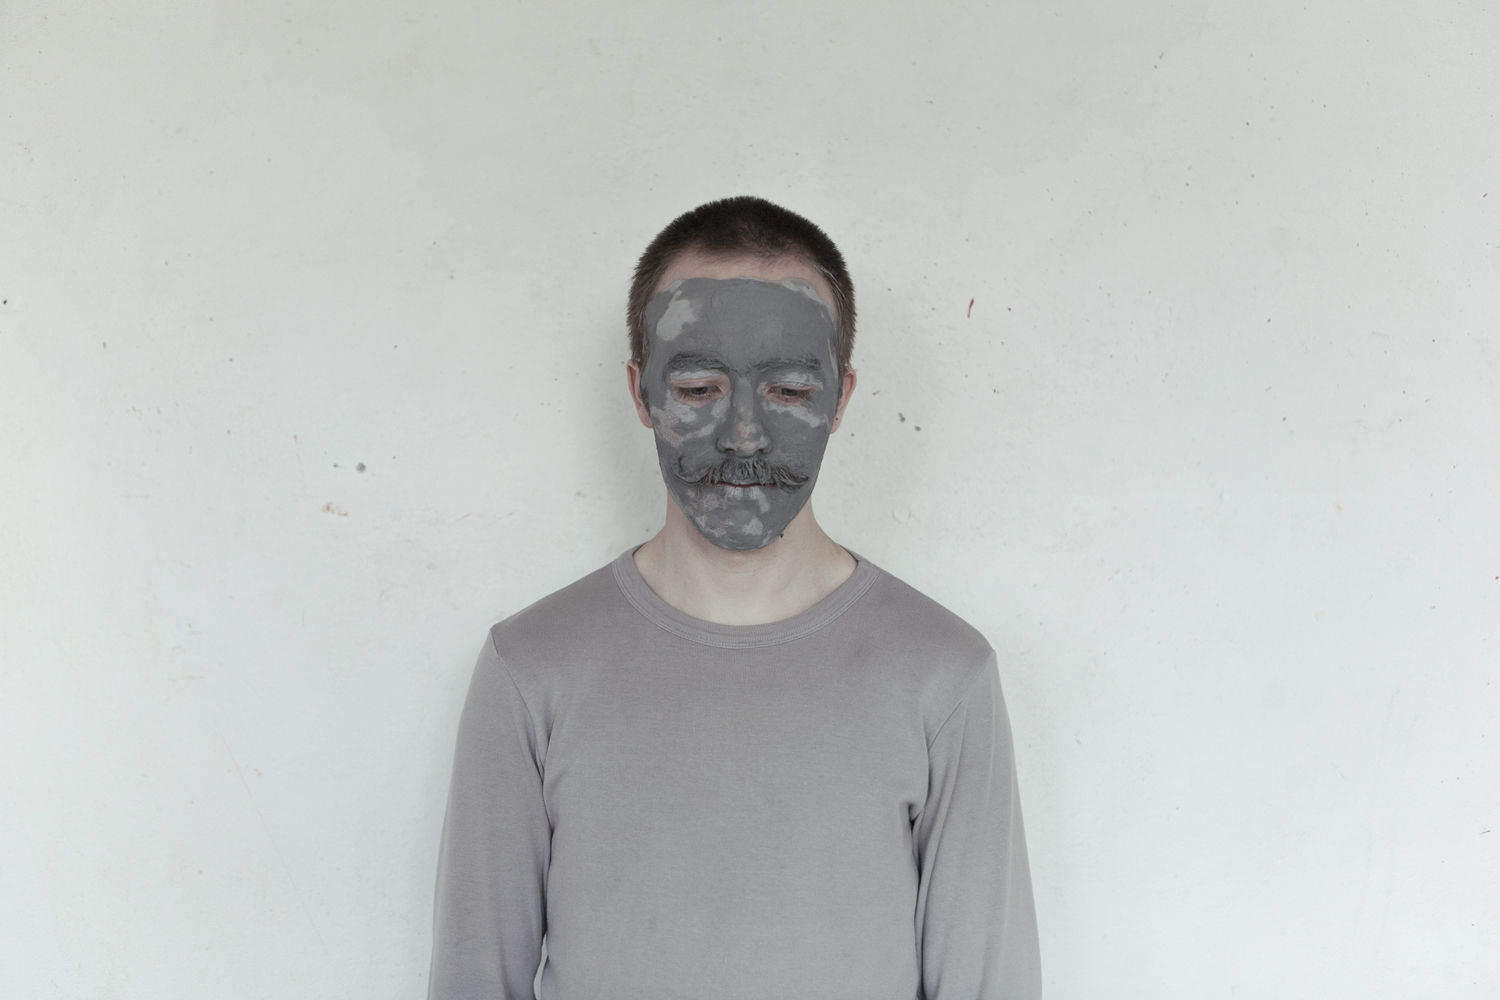 Portrait taken just after participant made his face imprint into the canvas. Iceland, 2011.